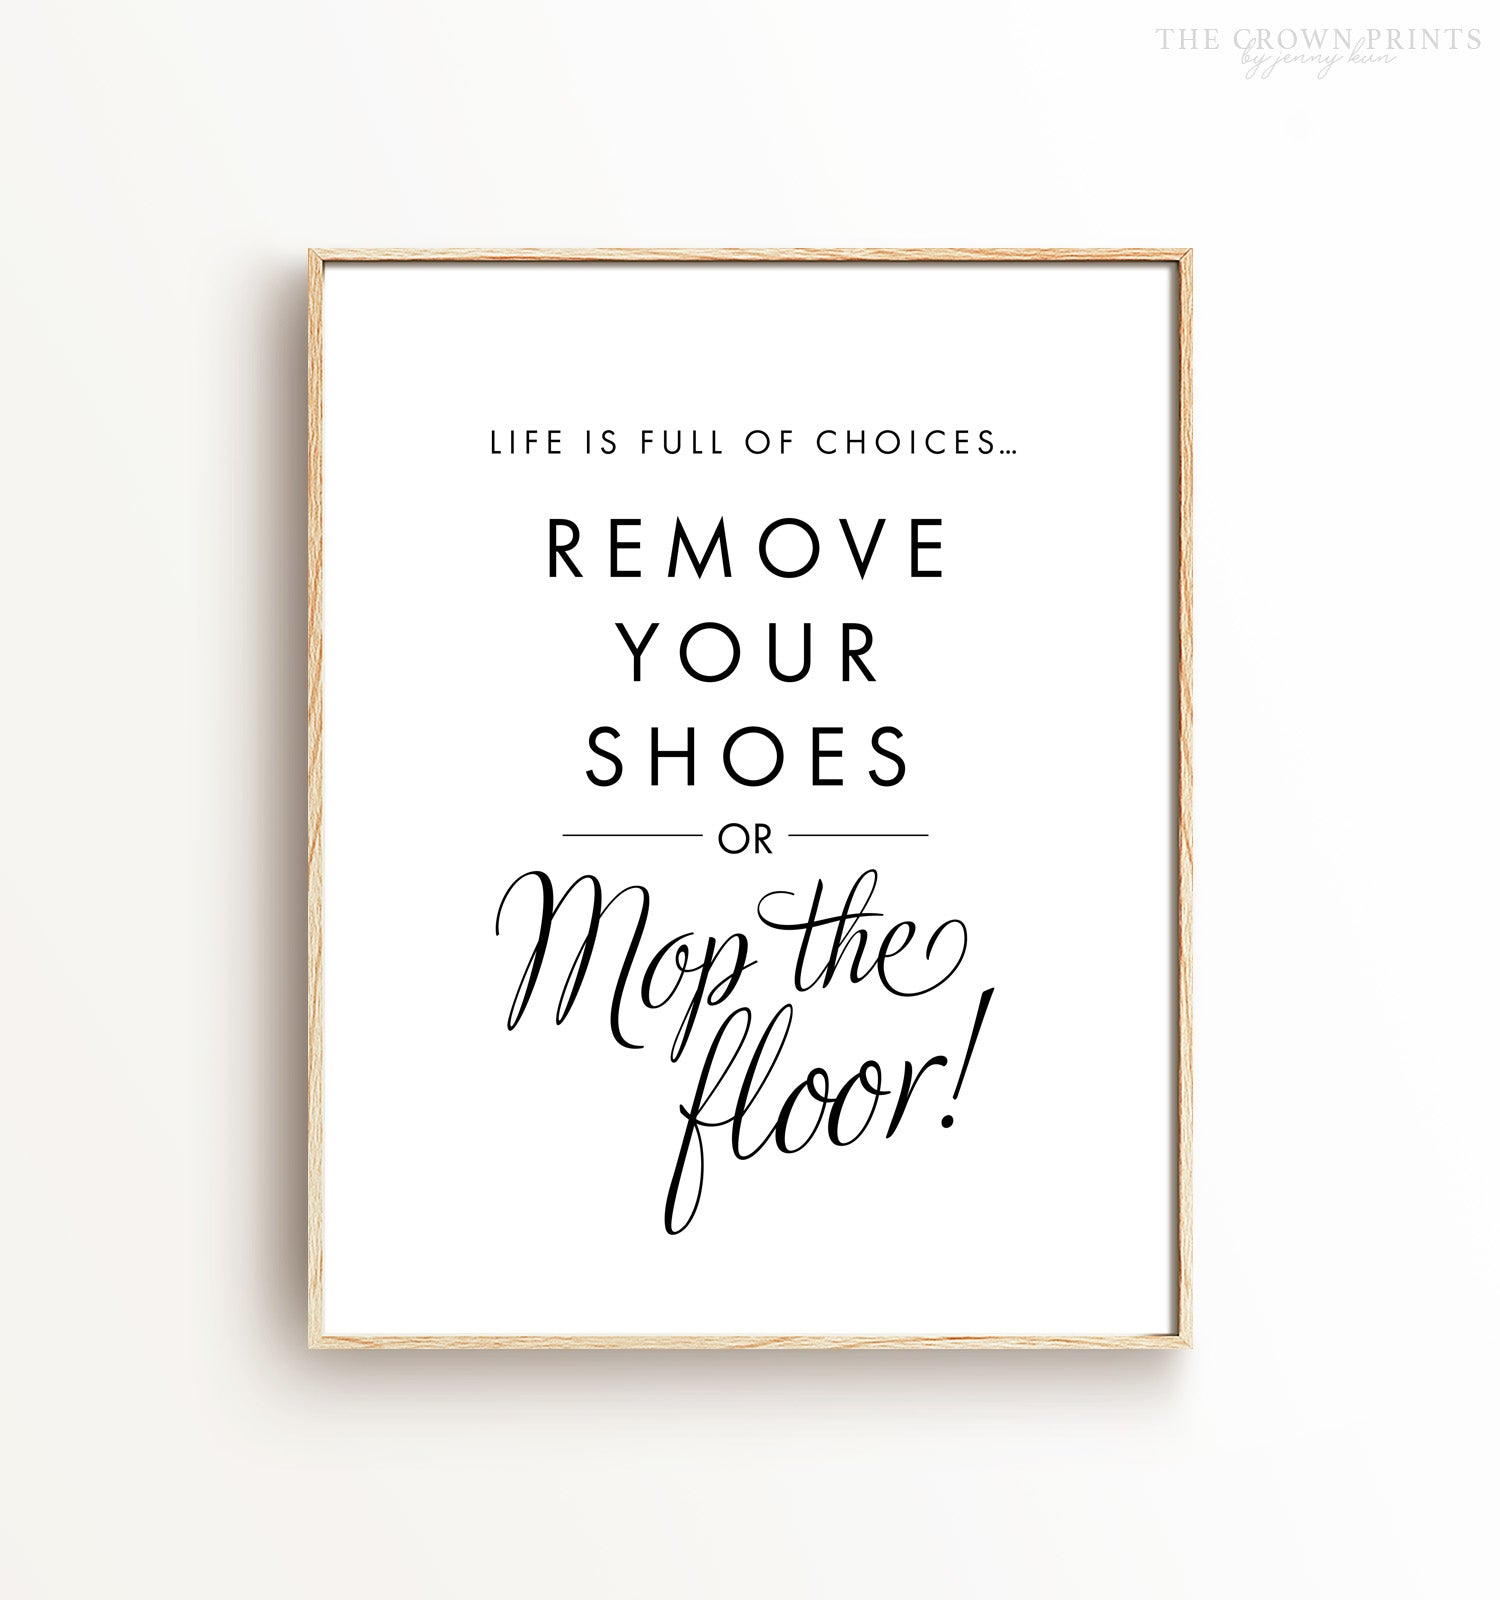 Life is Full of Choices - Shoes Off Printable Art